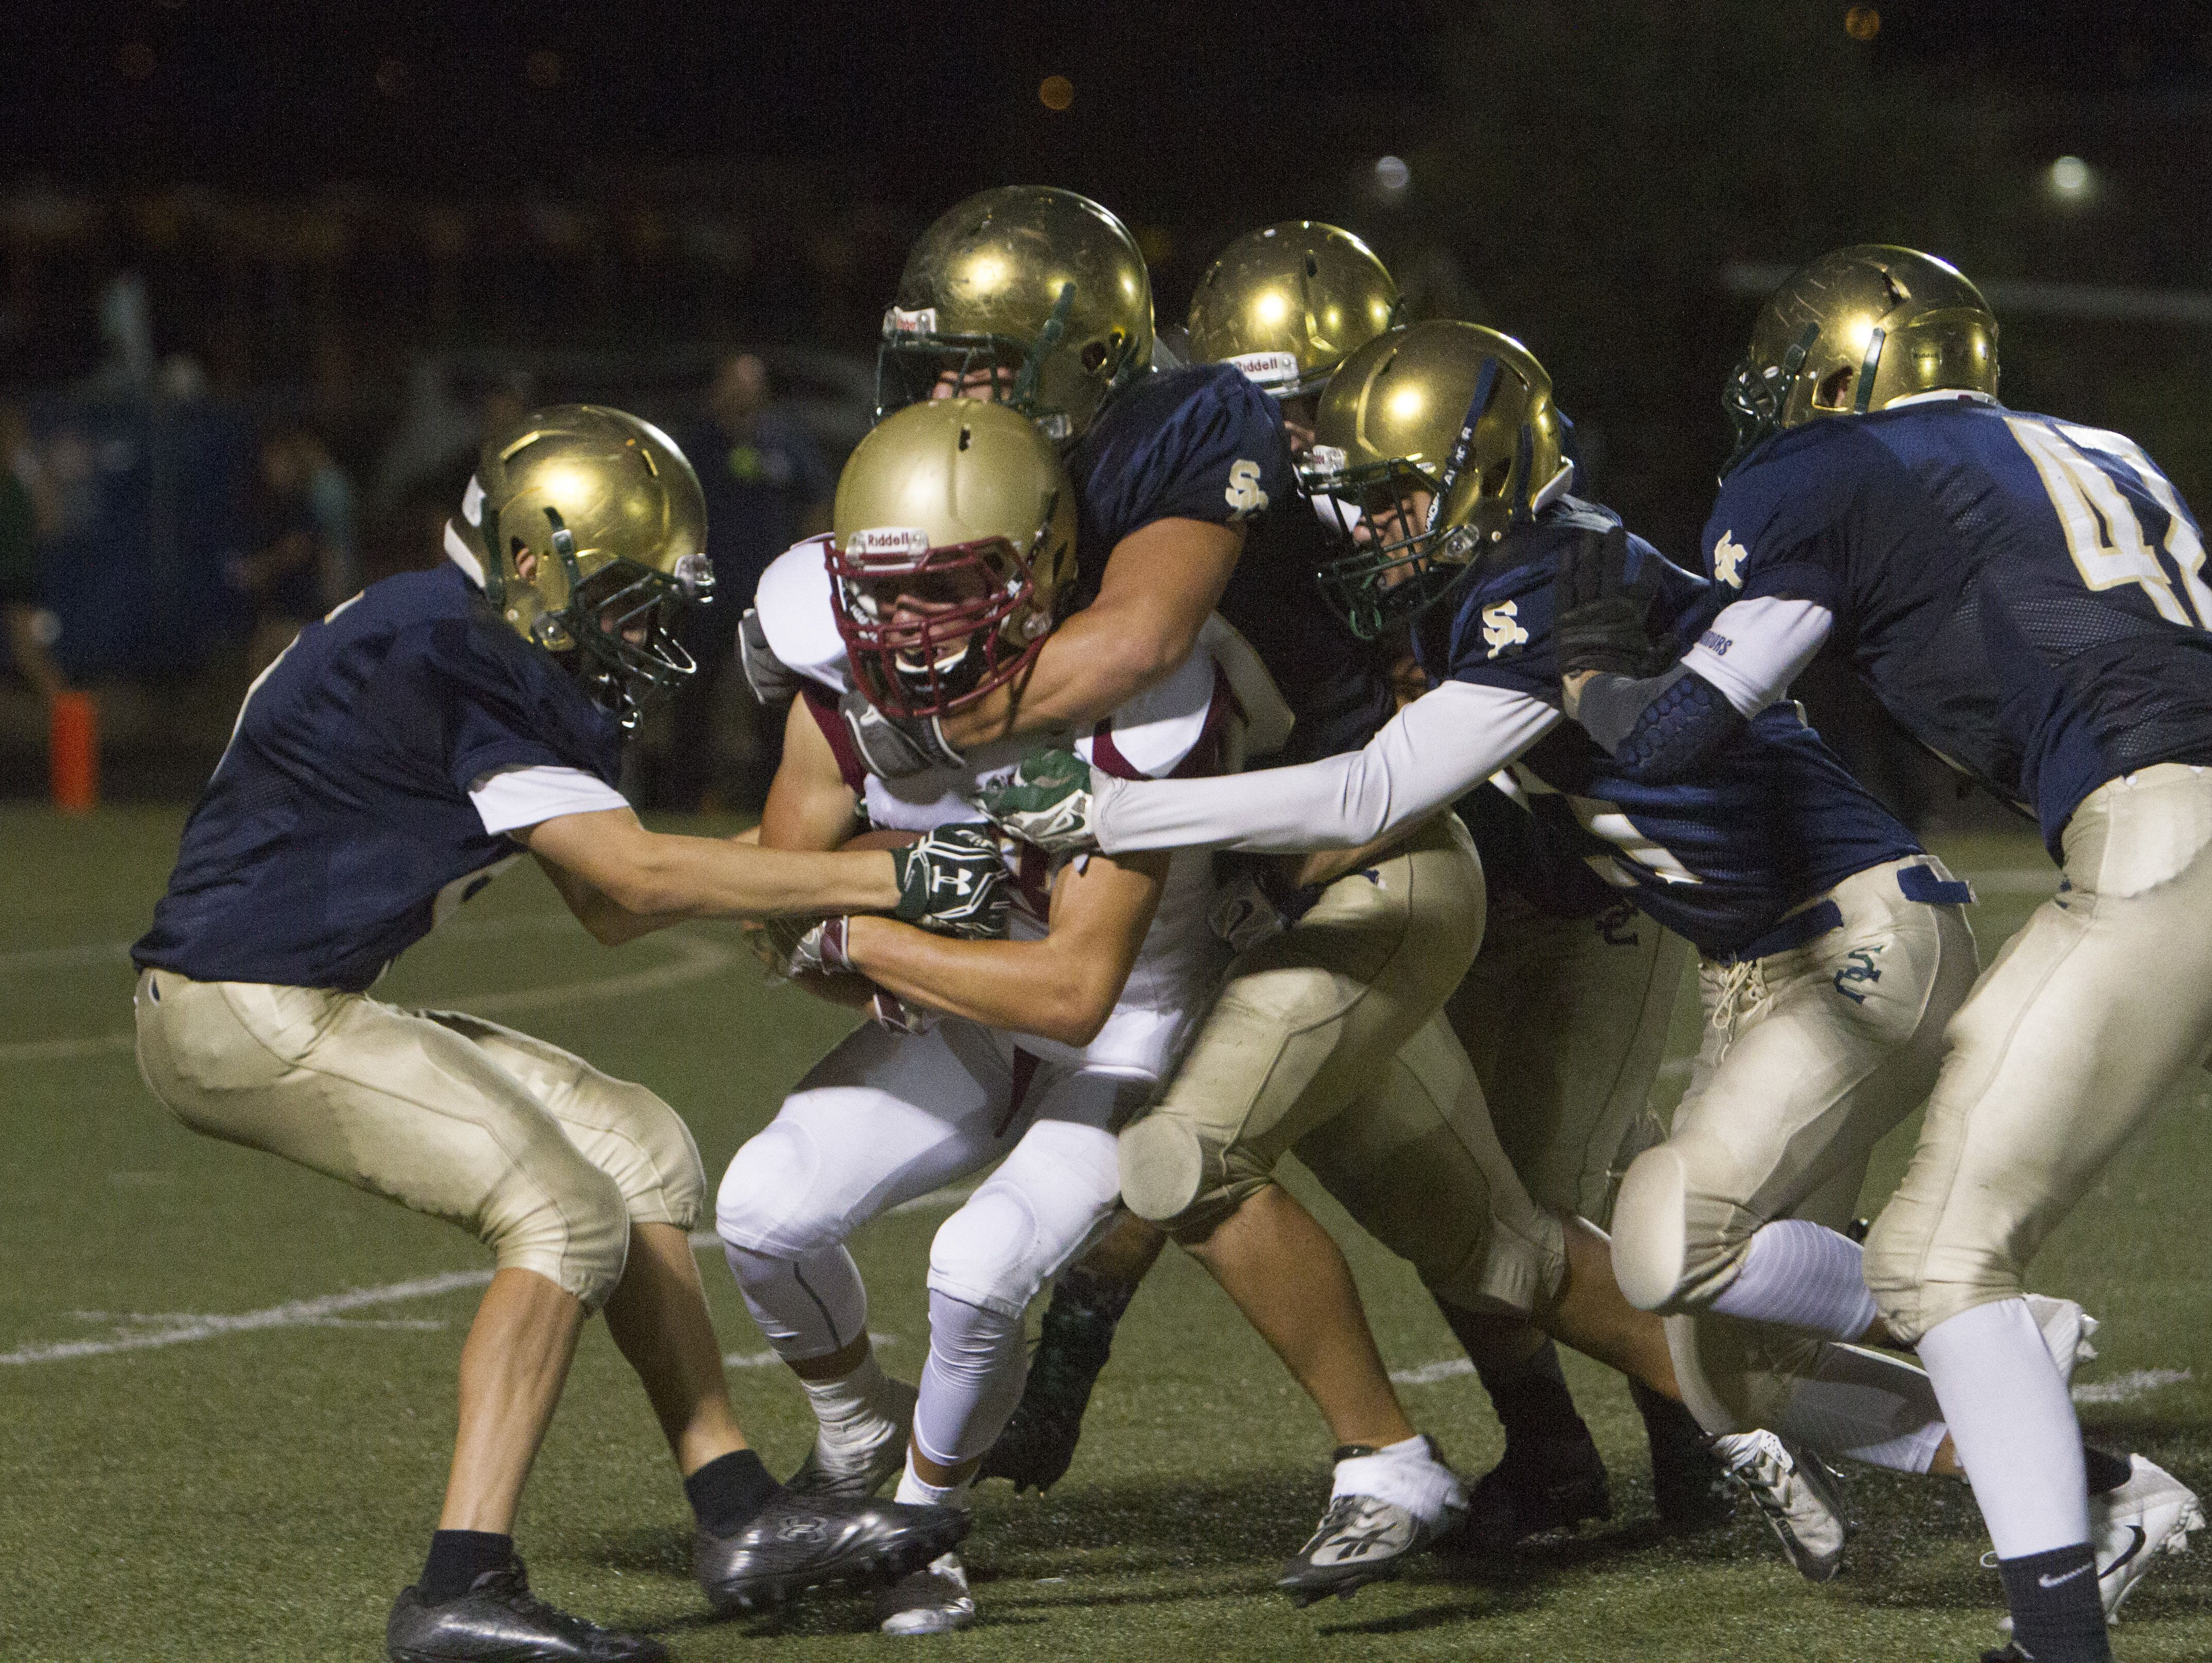 Snow Canyon defensive players hold back a Cedar High runner during their game Friday, Sept. 30, 2016.